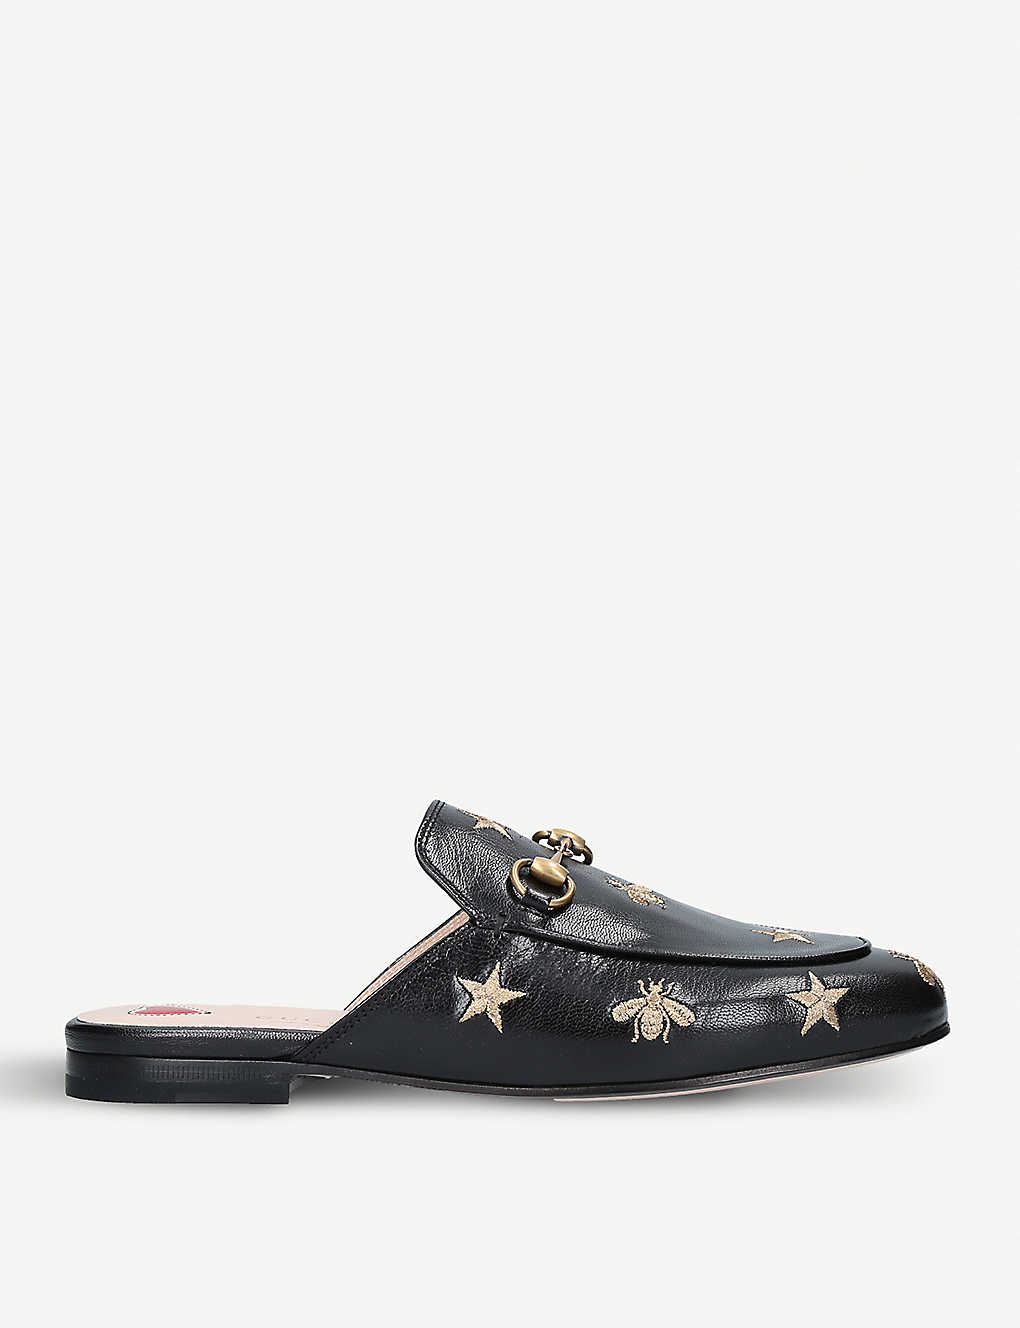 10fea940f GUCCI - Princetown embroidered leather slippers | Selfridges.com